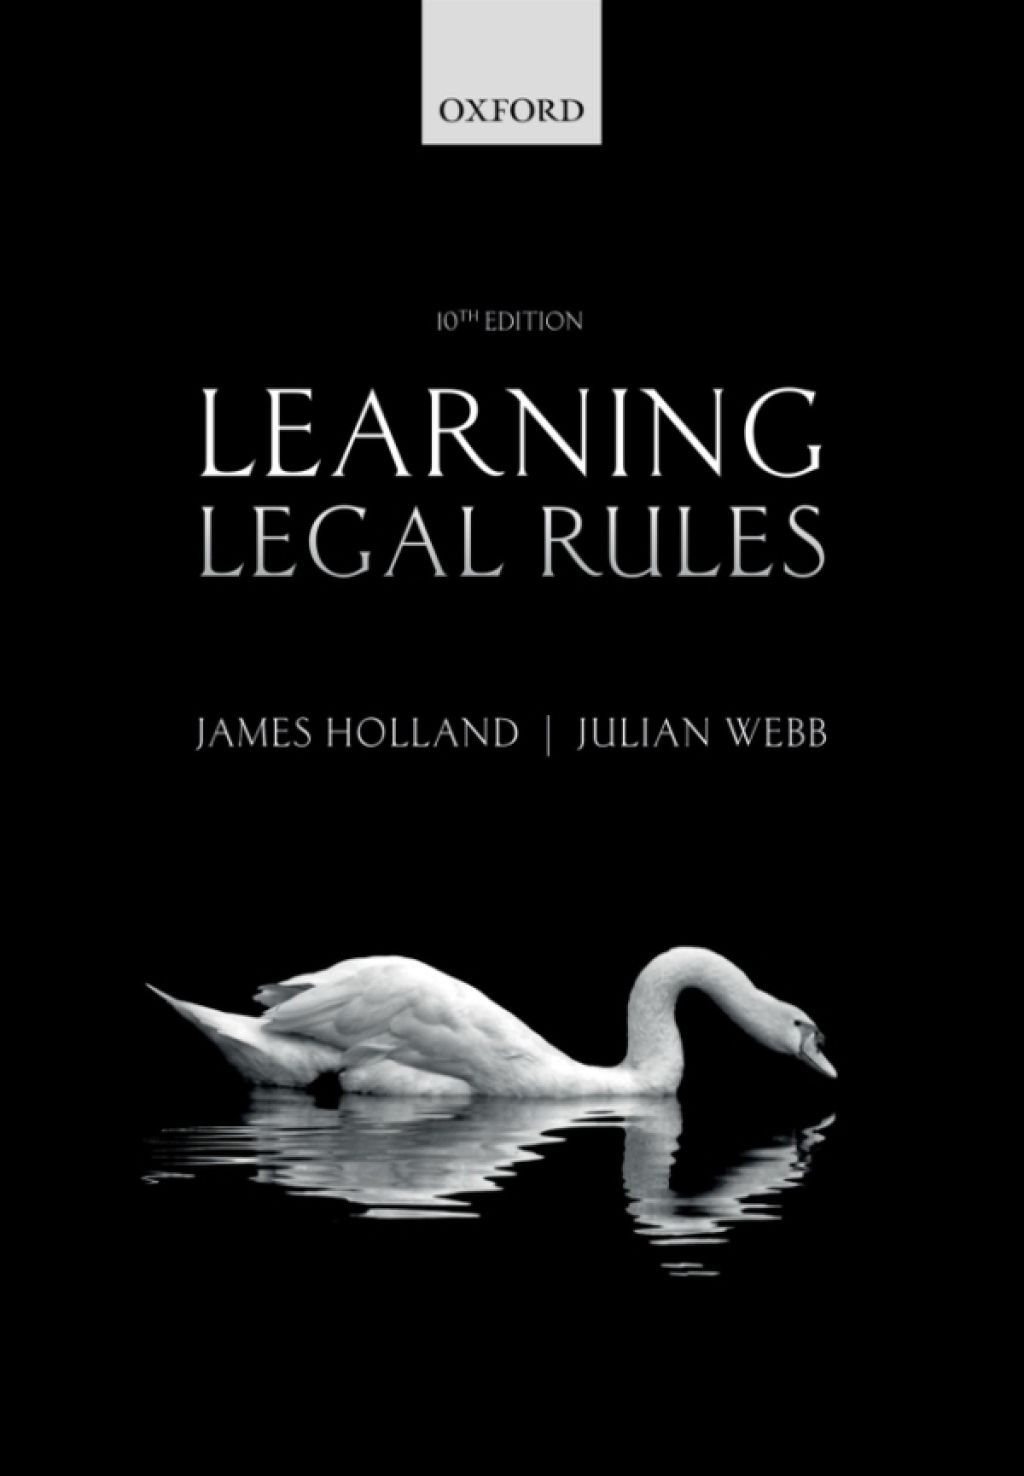 Learning Legal Rules Ebook Rental Student Guide Free Reading